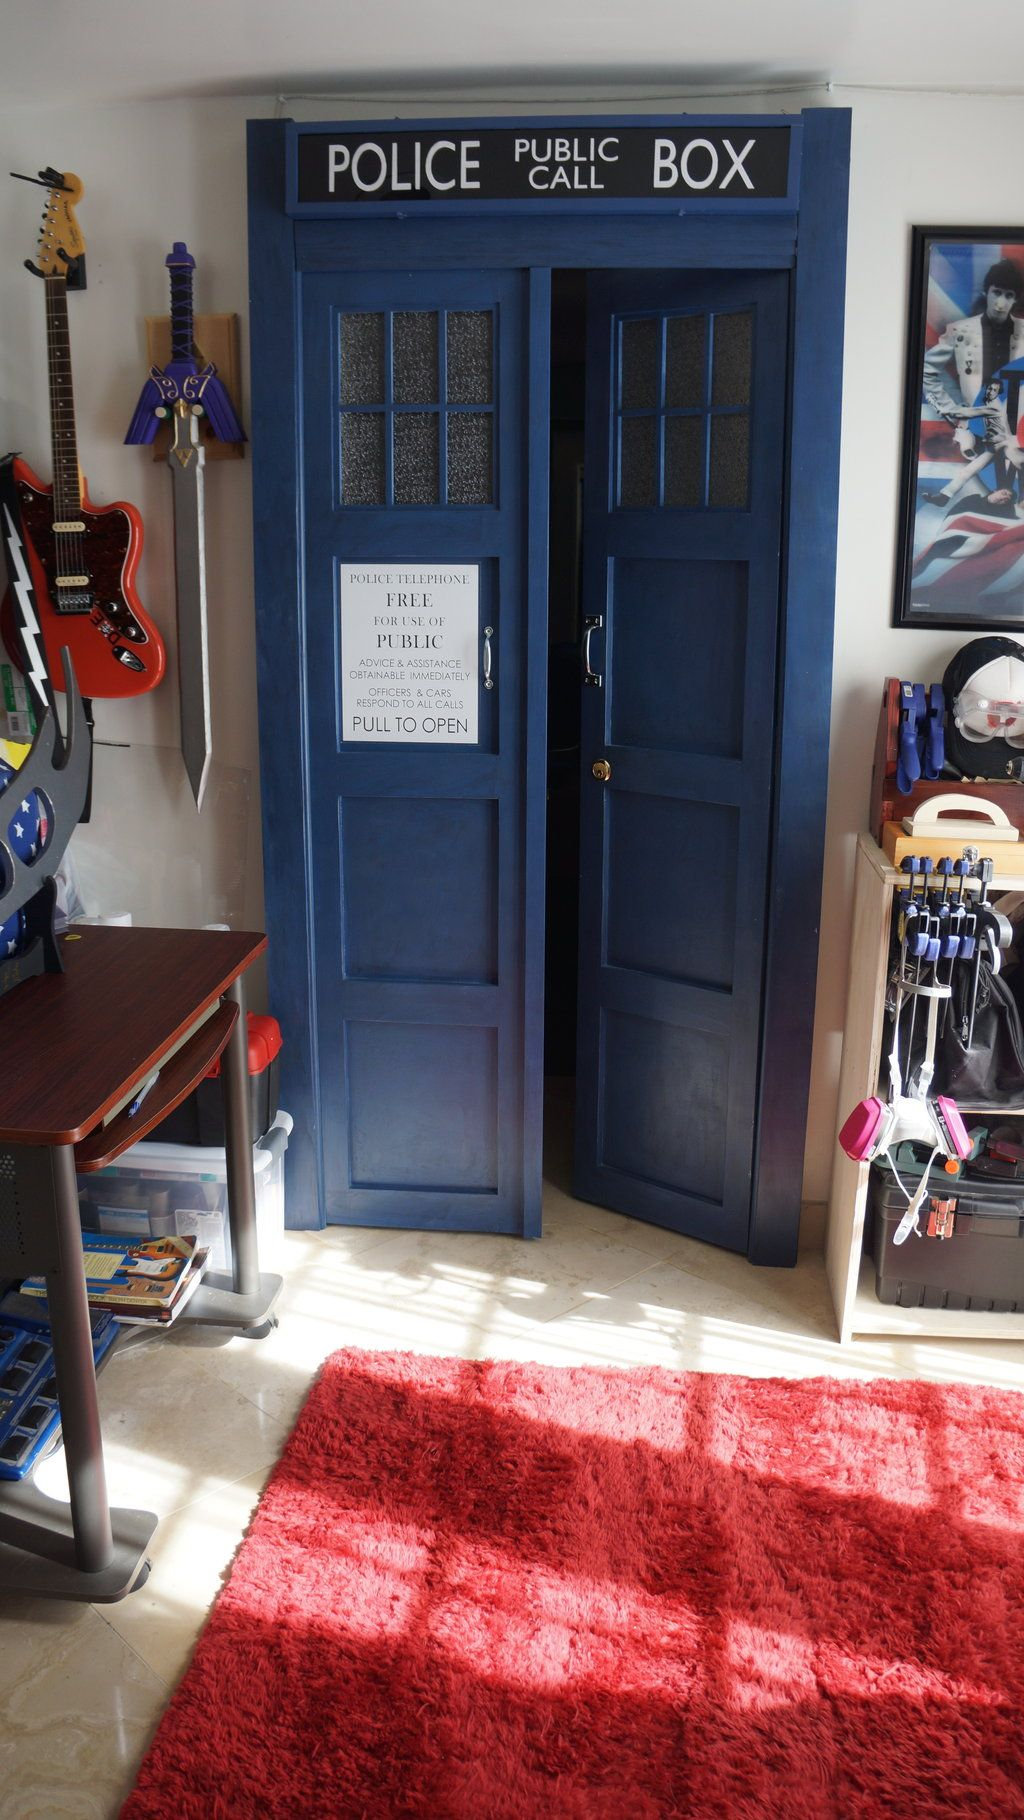 TARDIS BEDROOM DOOR 02 By ~TheDaleoftheDead On DeviantART Thats What I Want  Two Bedroomu0027s One Inside The Regular One Like A Closet But Itu0027s Just  Another ...